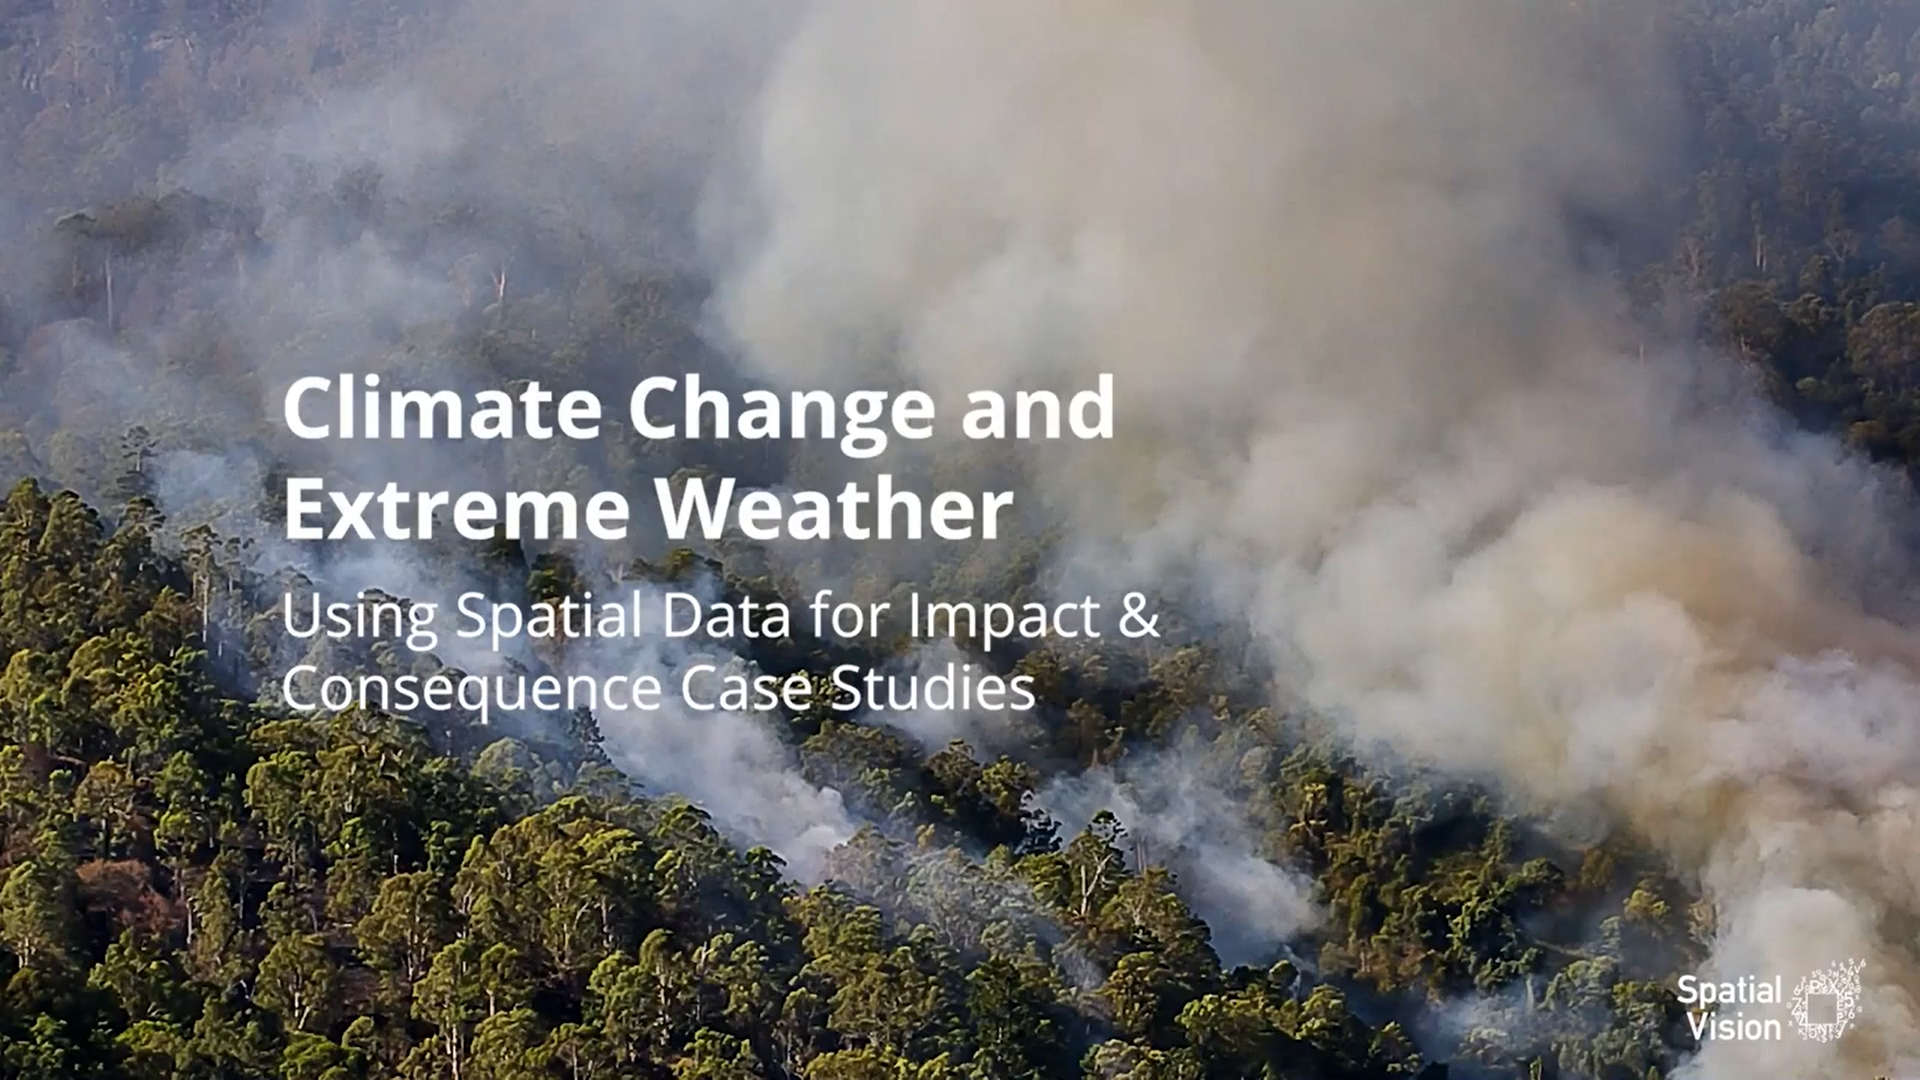 Climate Change and Extreme Weather – Using Spatial Data for Impact & Consequence Case Studies